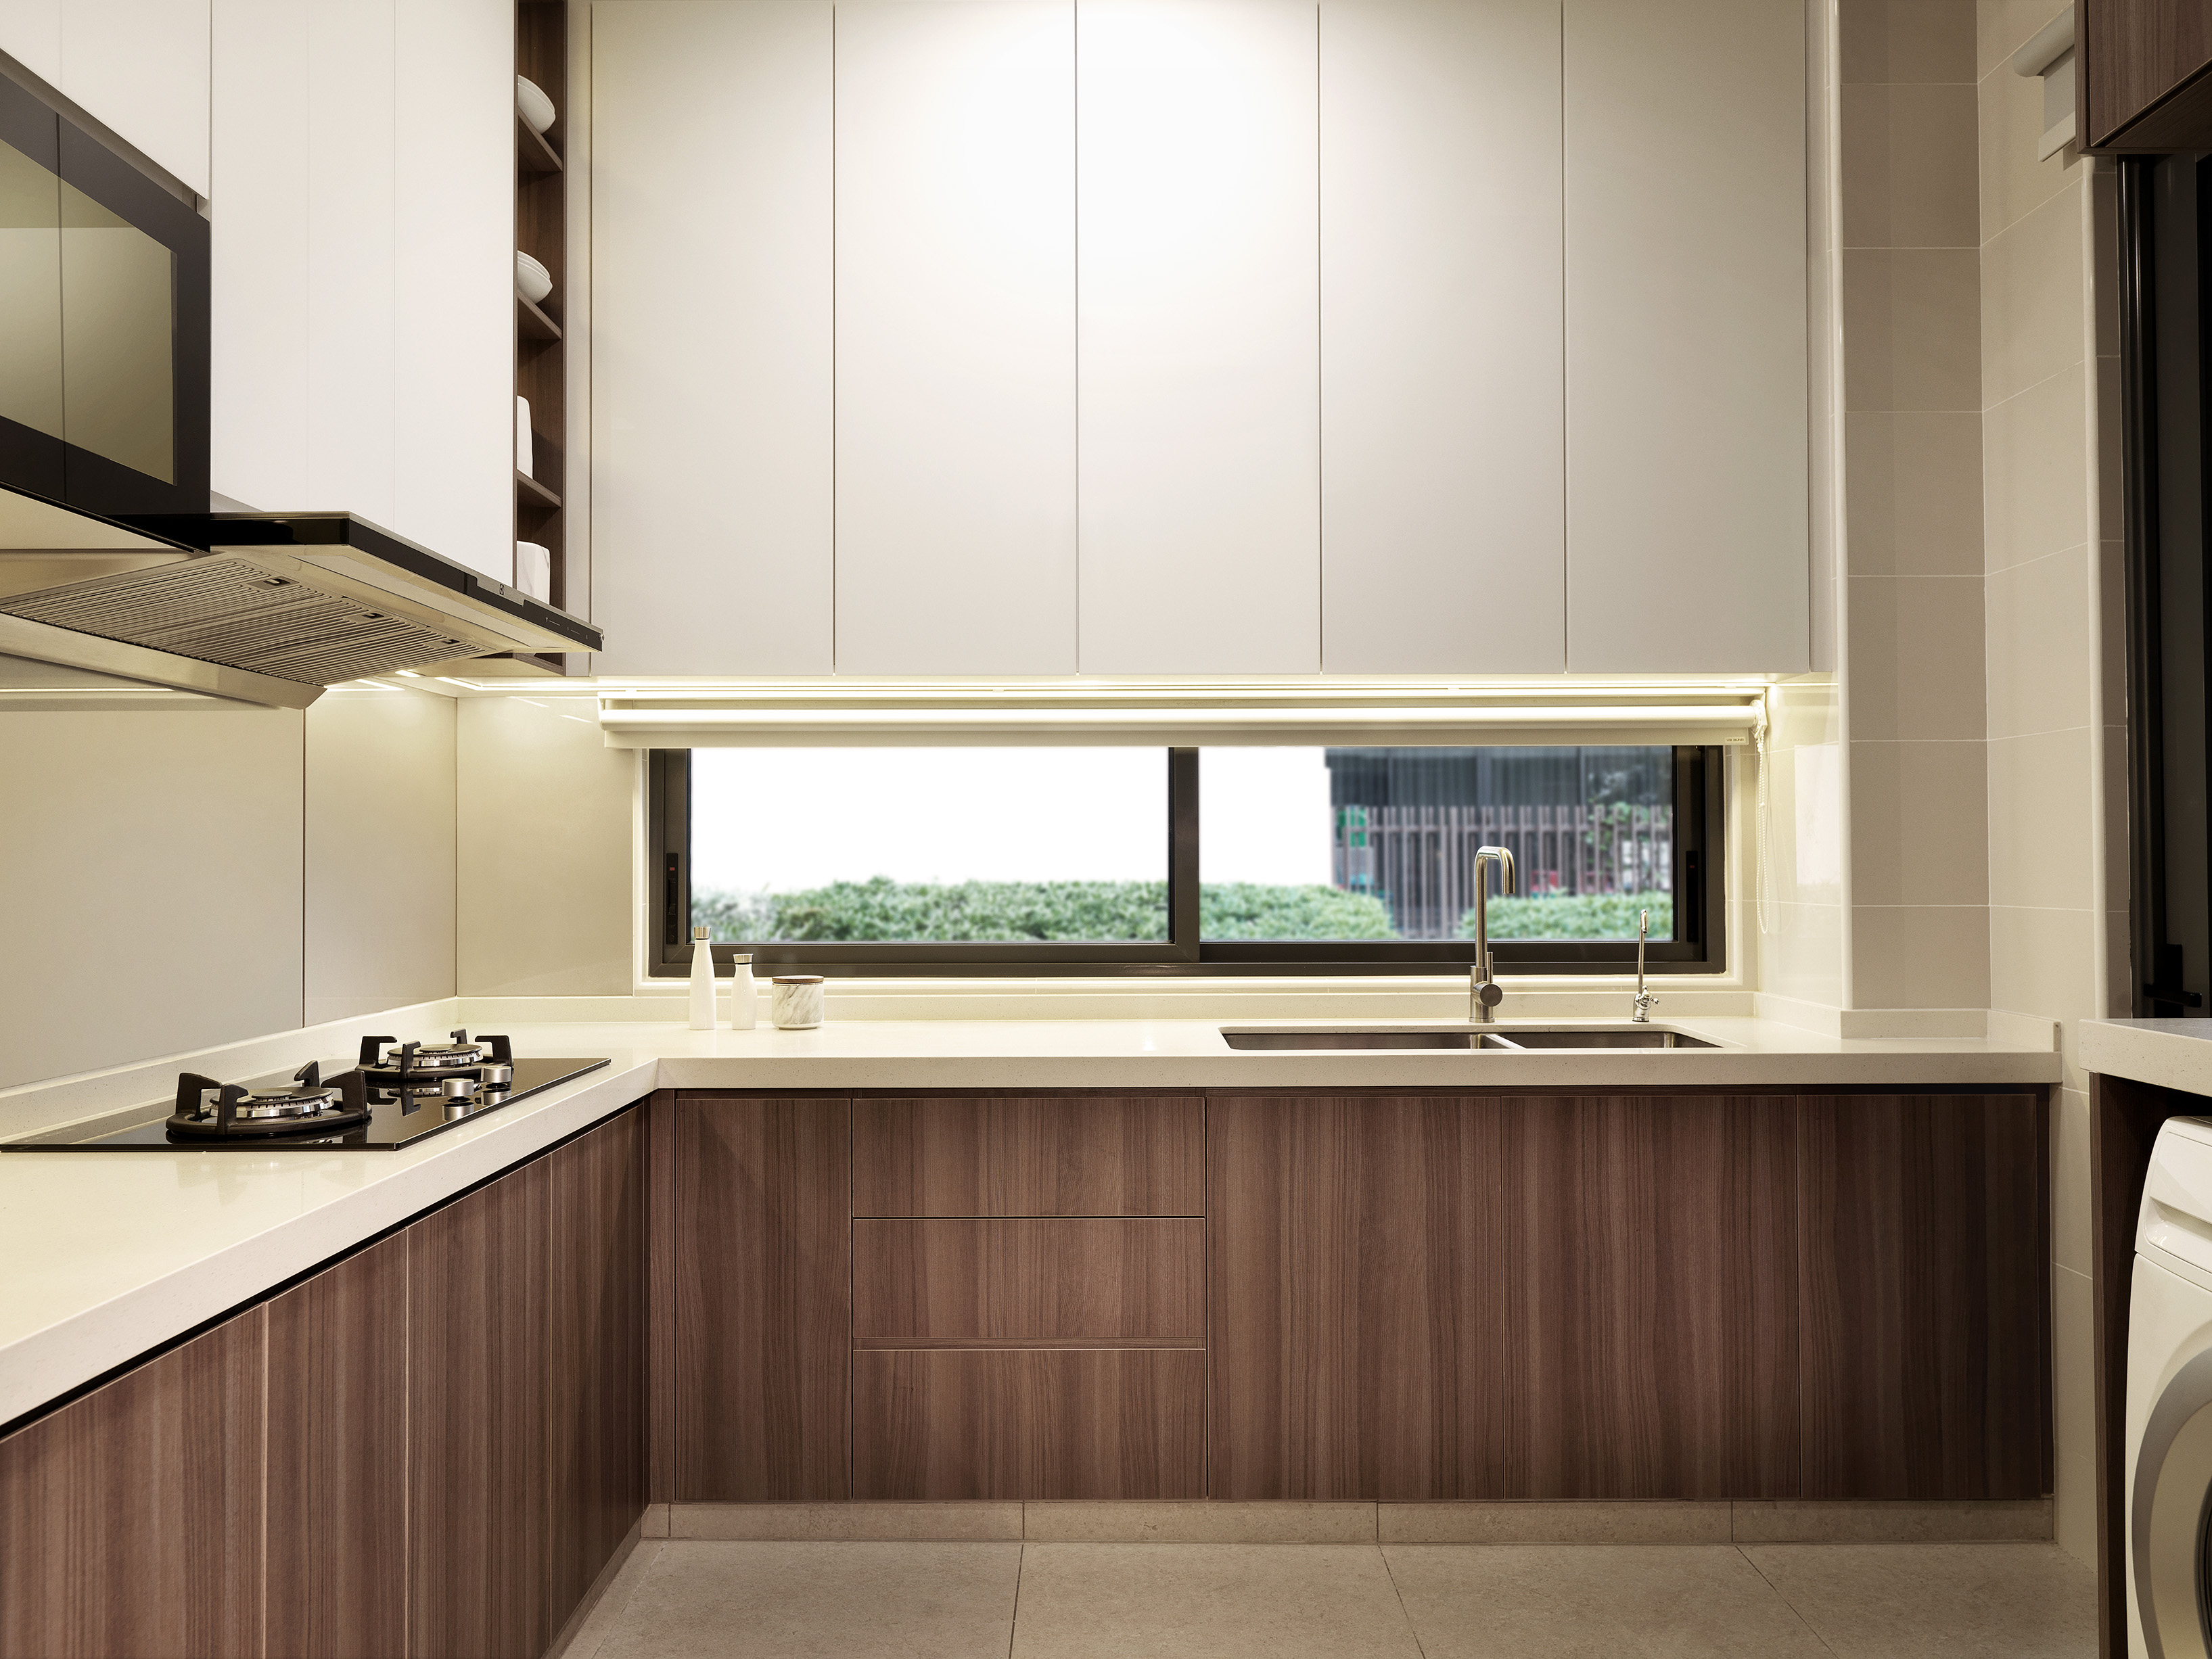 5 Wet And Dry Kitchen Design Ideas For Malaysian Homes Iproperty Com My